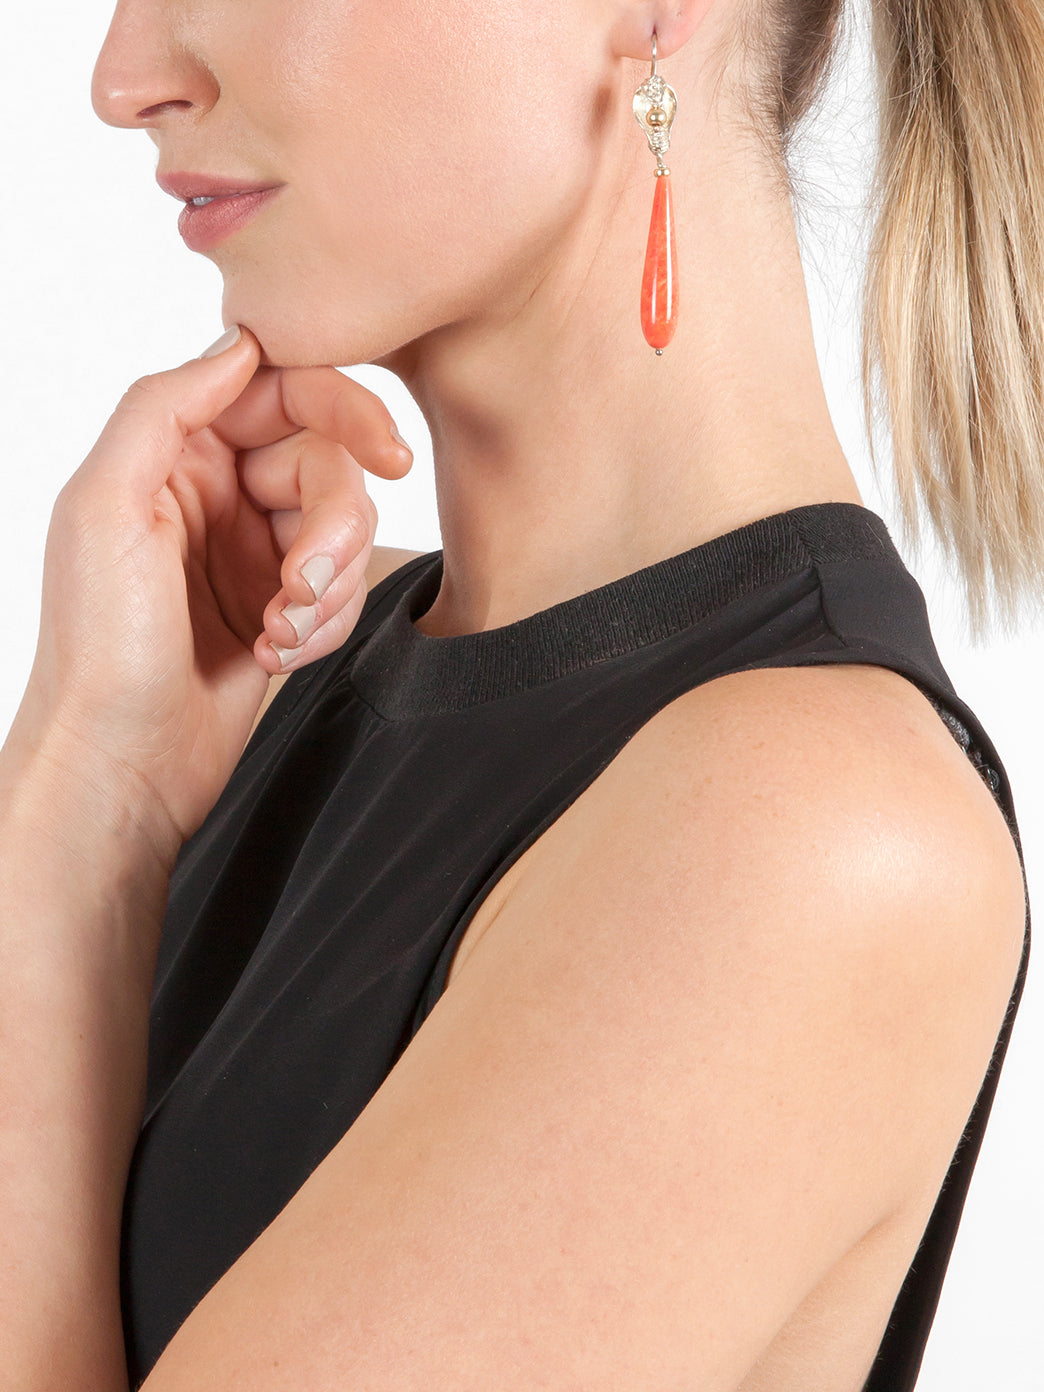 Fiorina Jewellery Medusa Cobra Earrings Coral Model